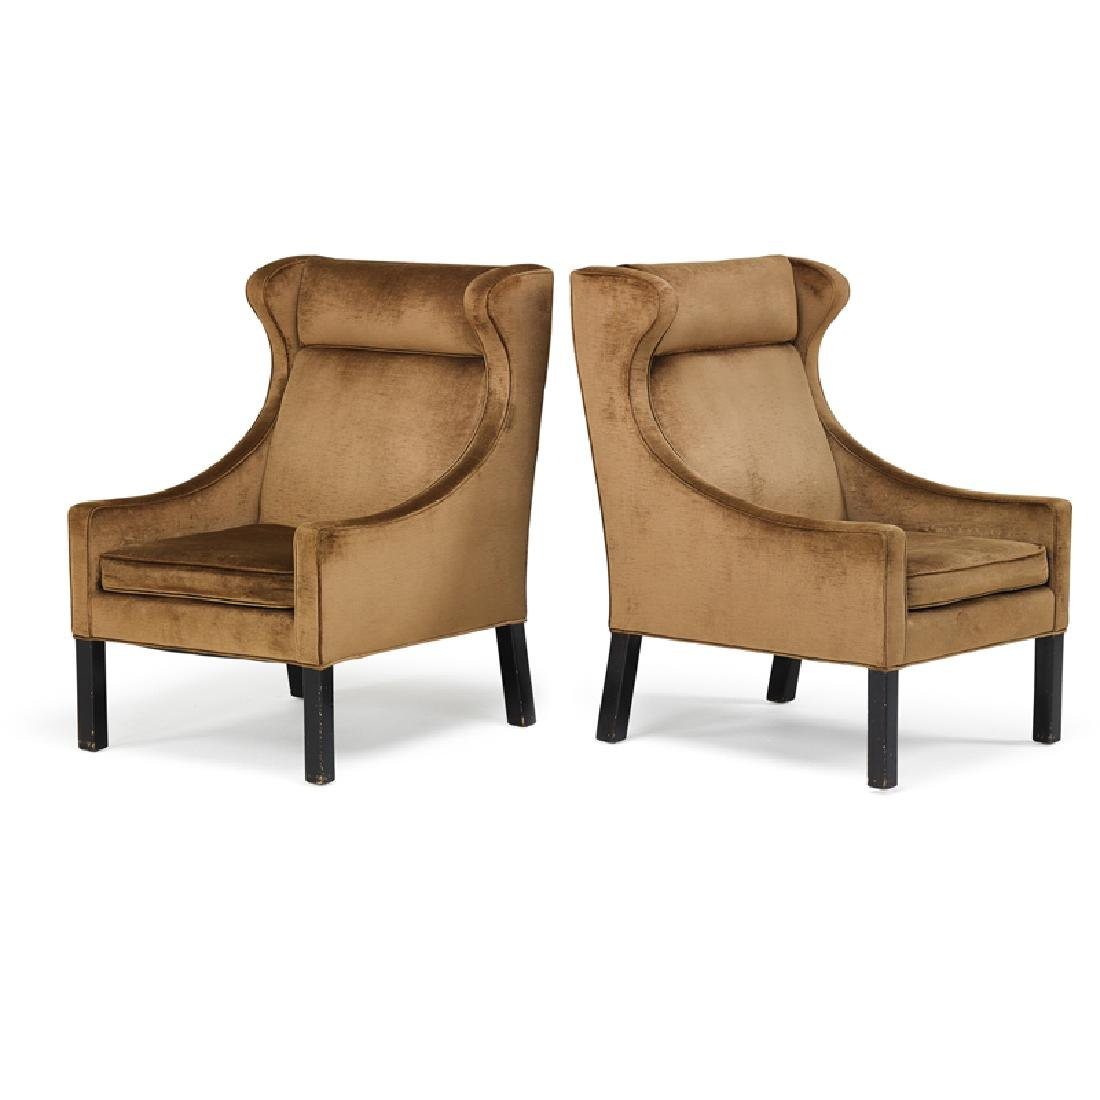 BORGE MOGENSEN Pair of lounge chairs